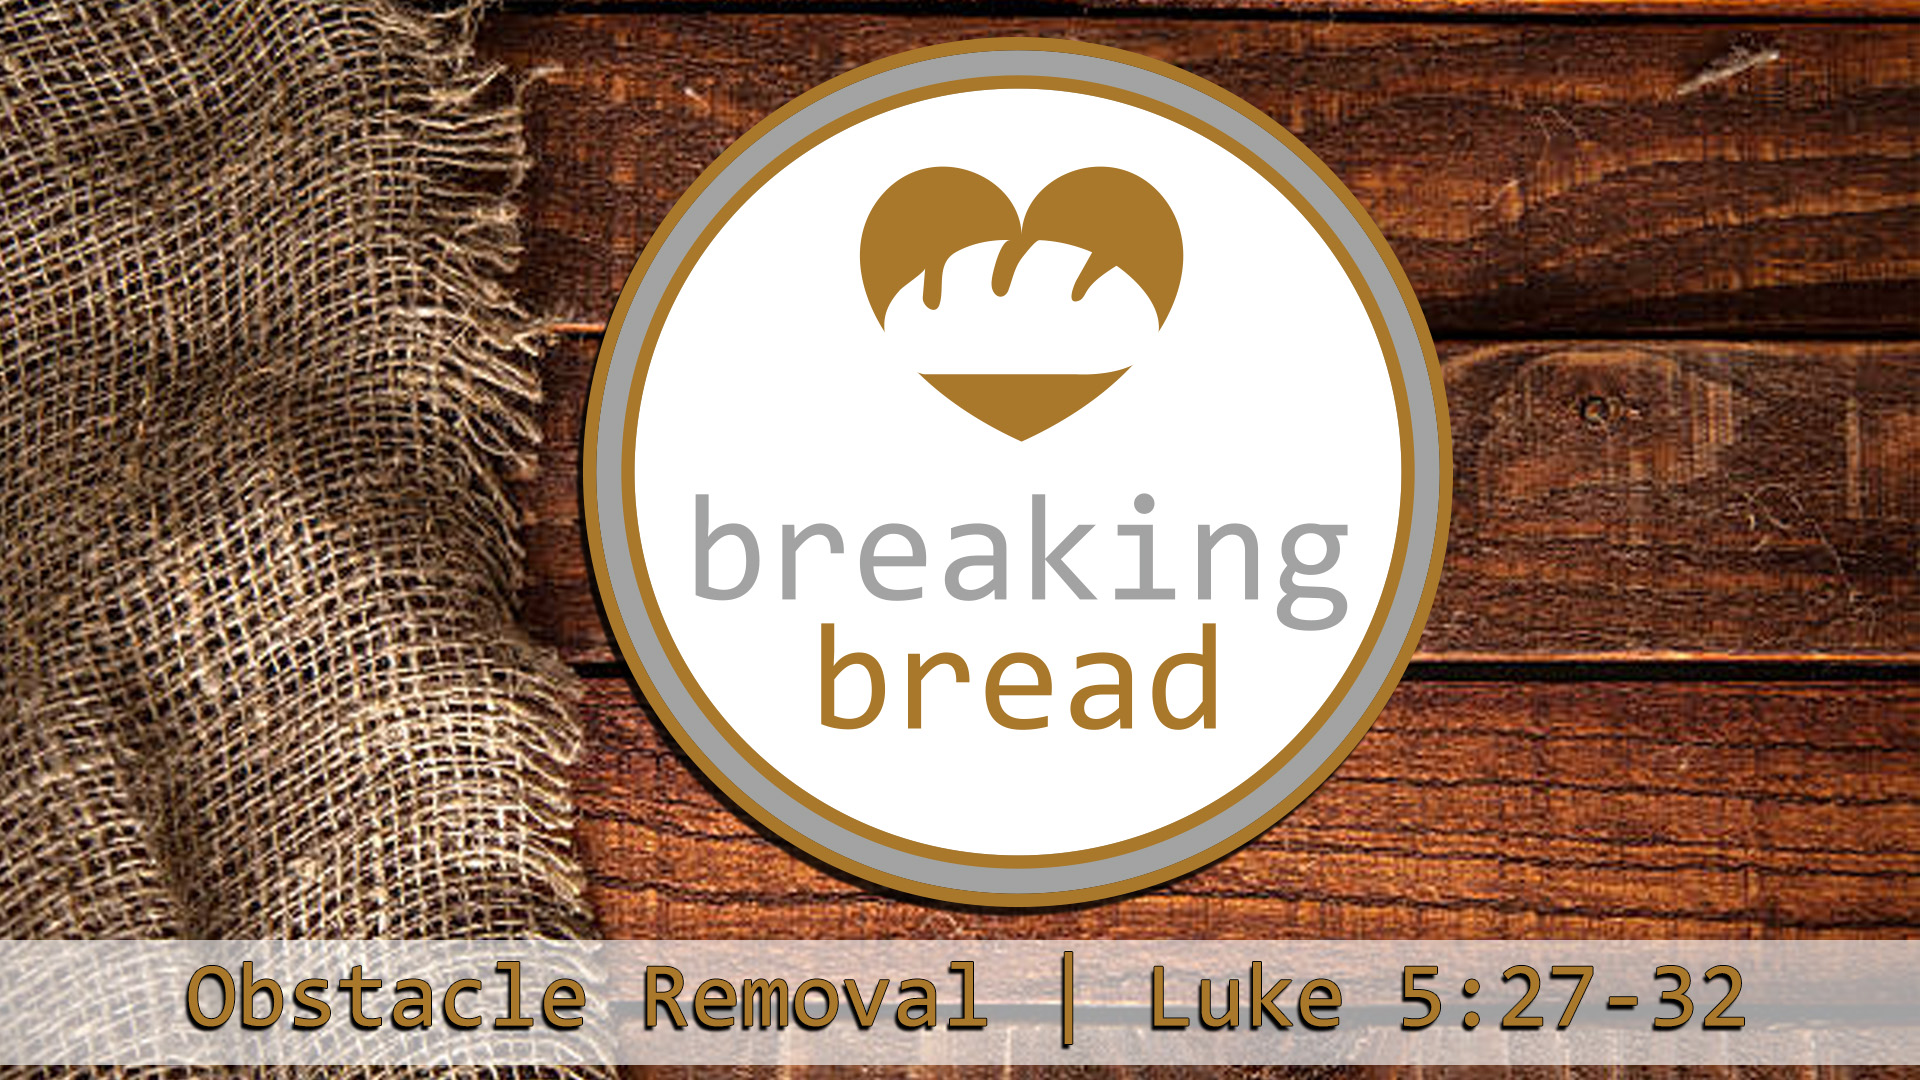 Obstacle_breaking_bread_Sanctuary